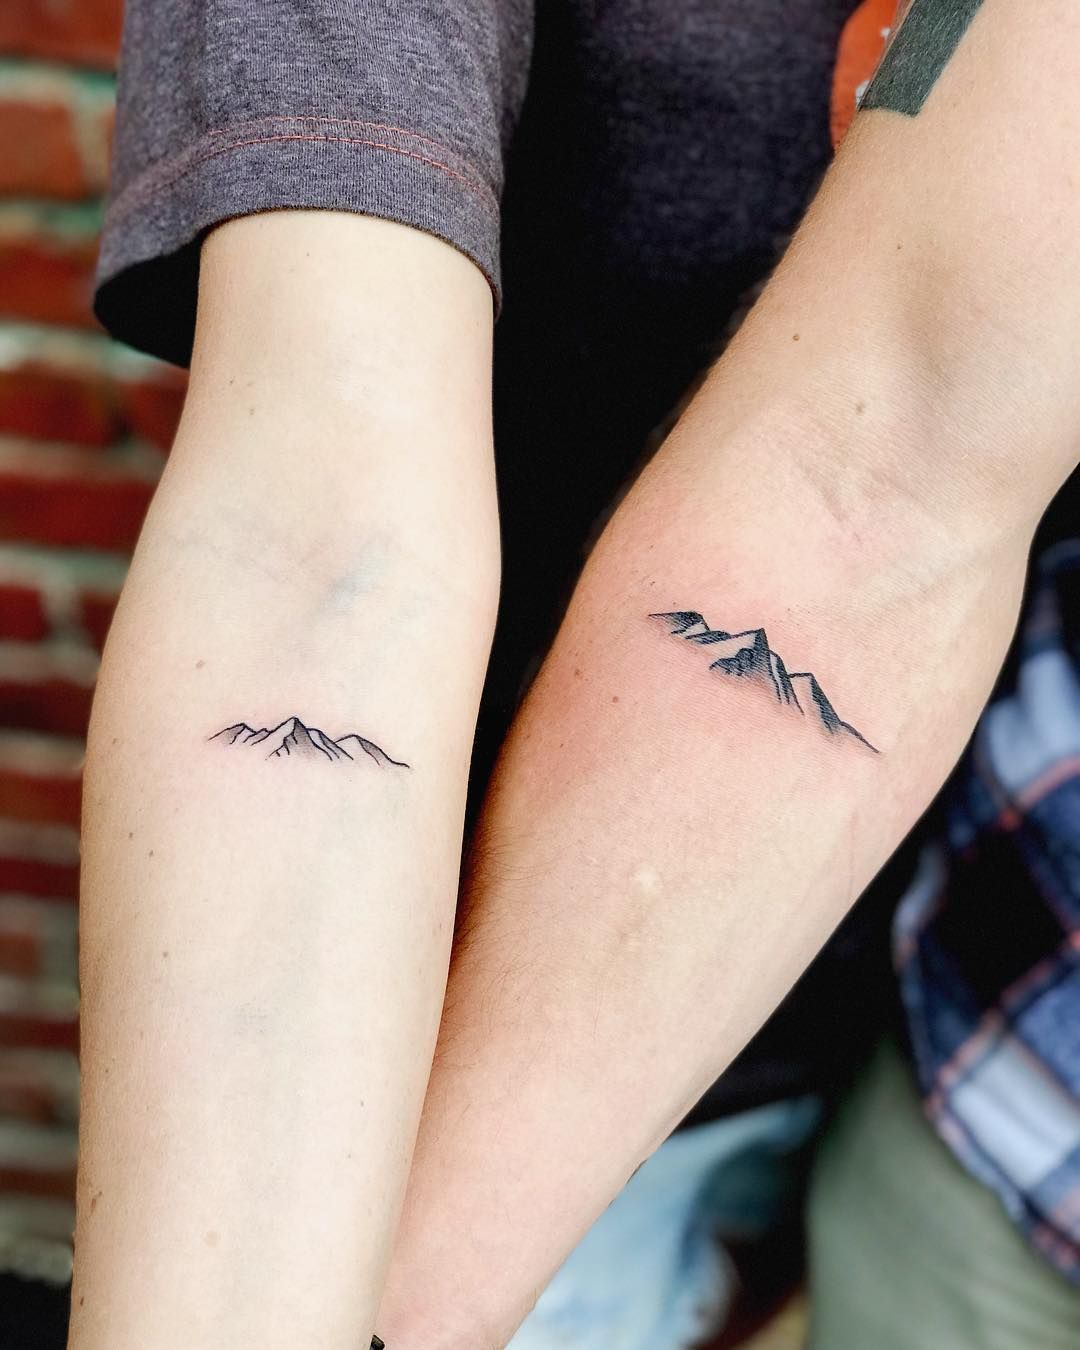 50 Couples Tattoos That Are RelationshipGoals Matching